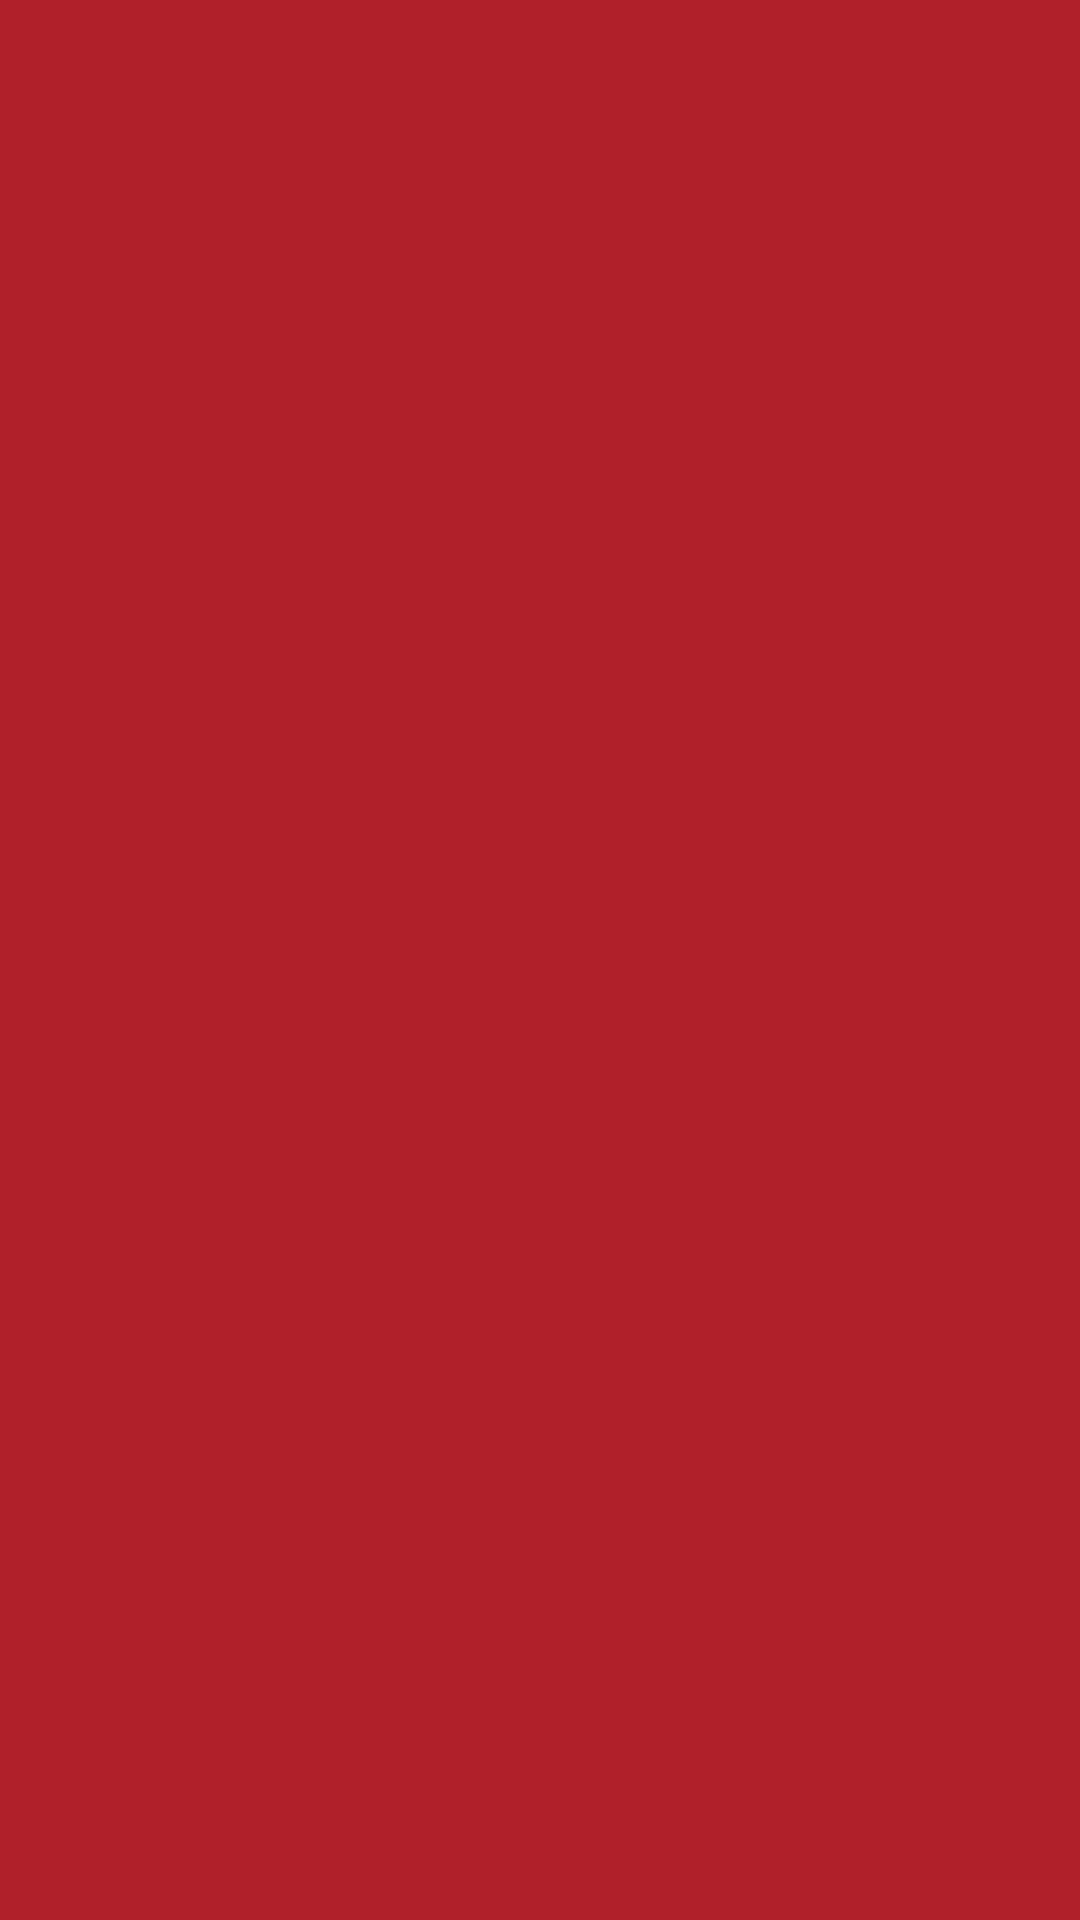 1080x1920 Upsdell Red Solid Color Background